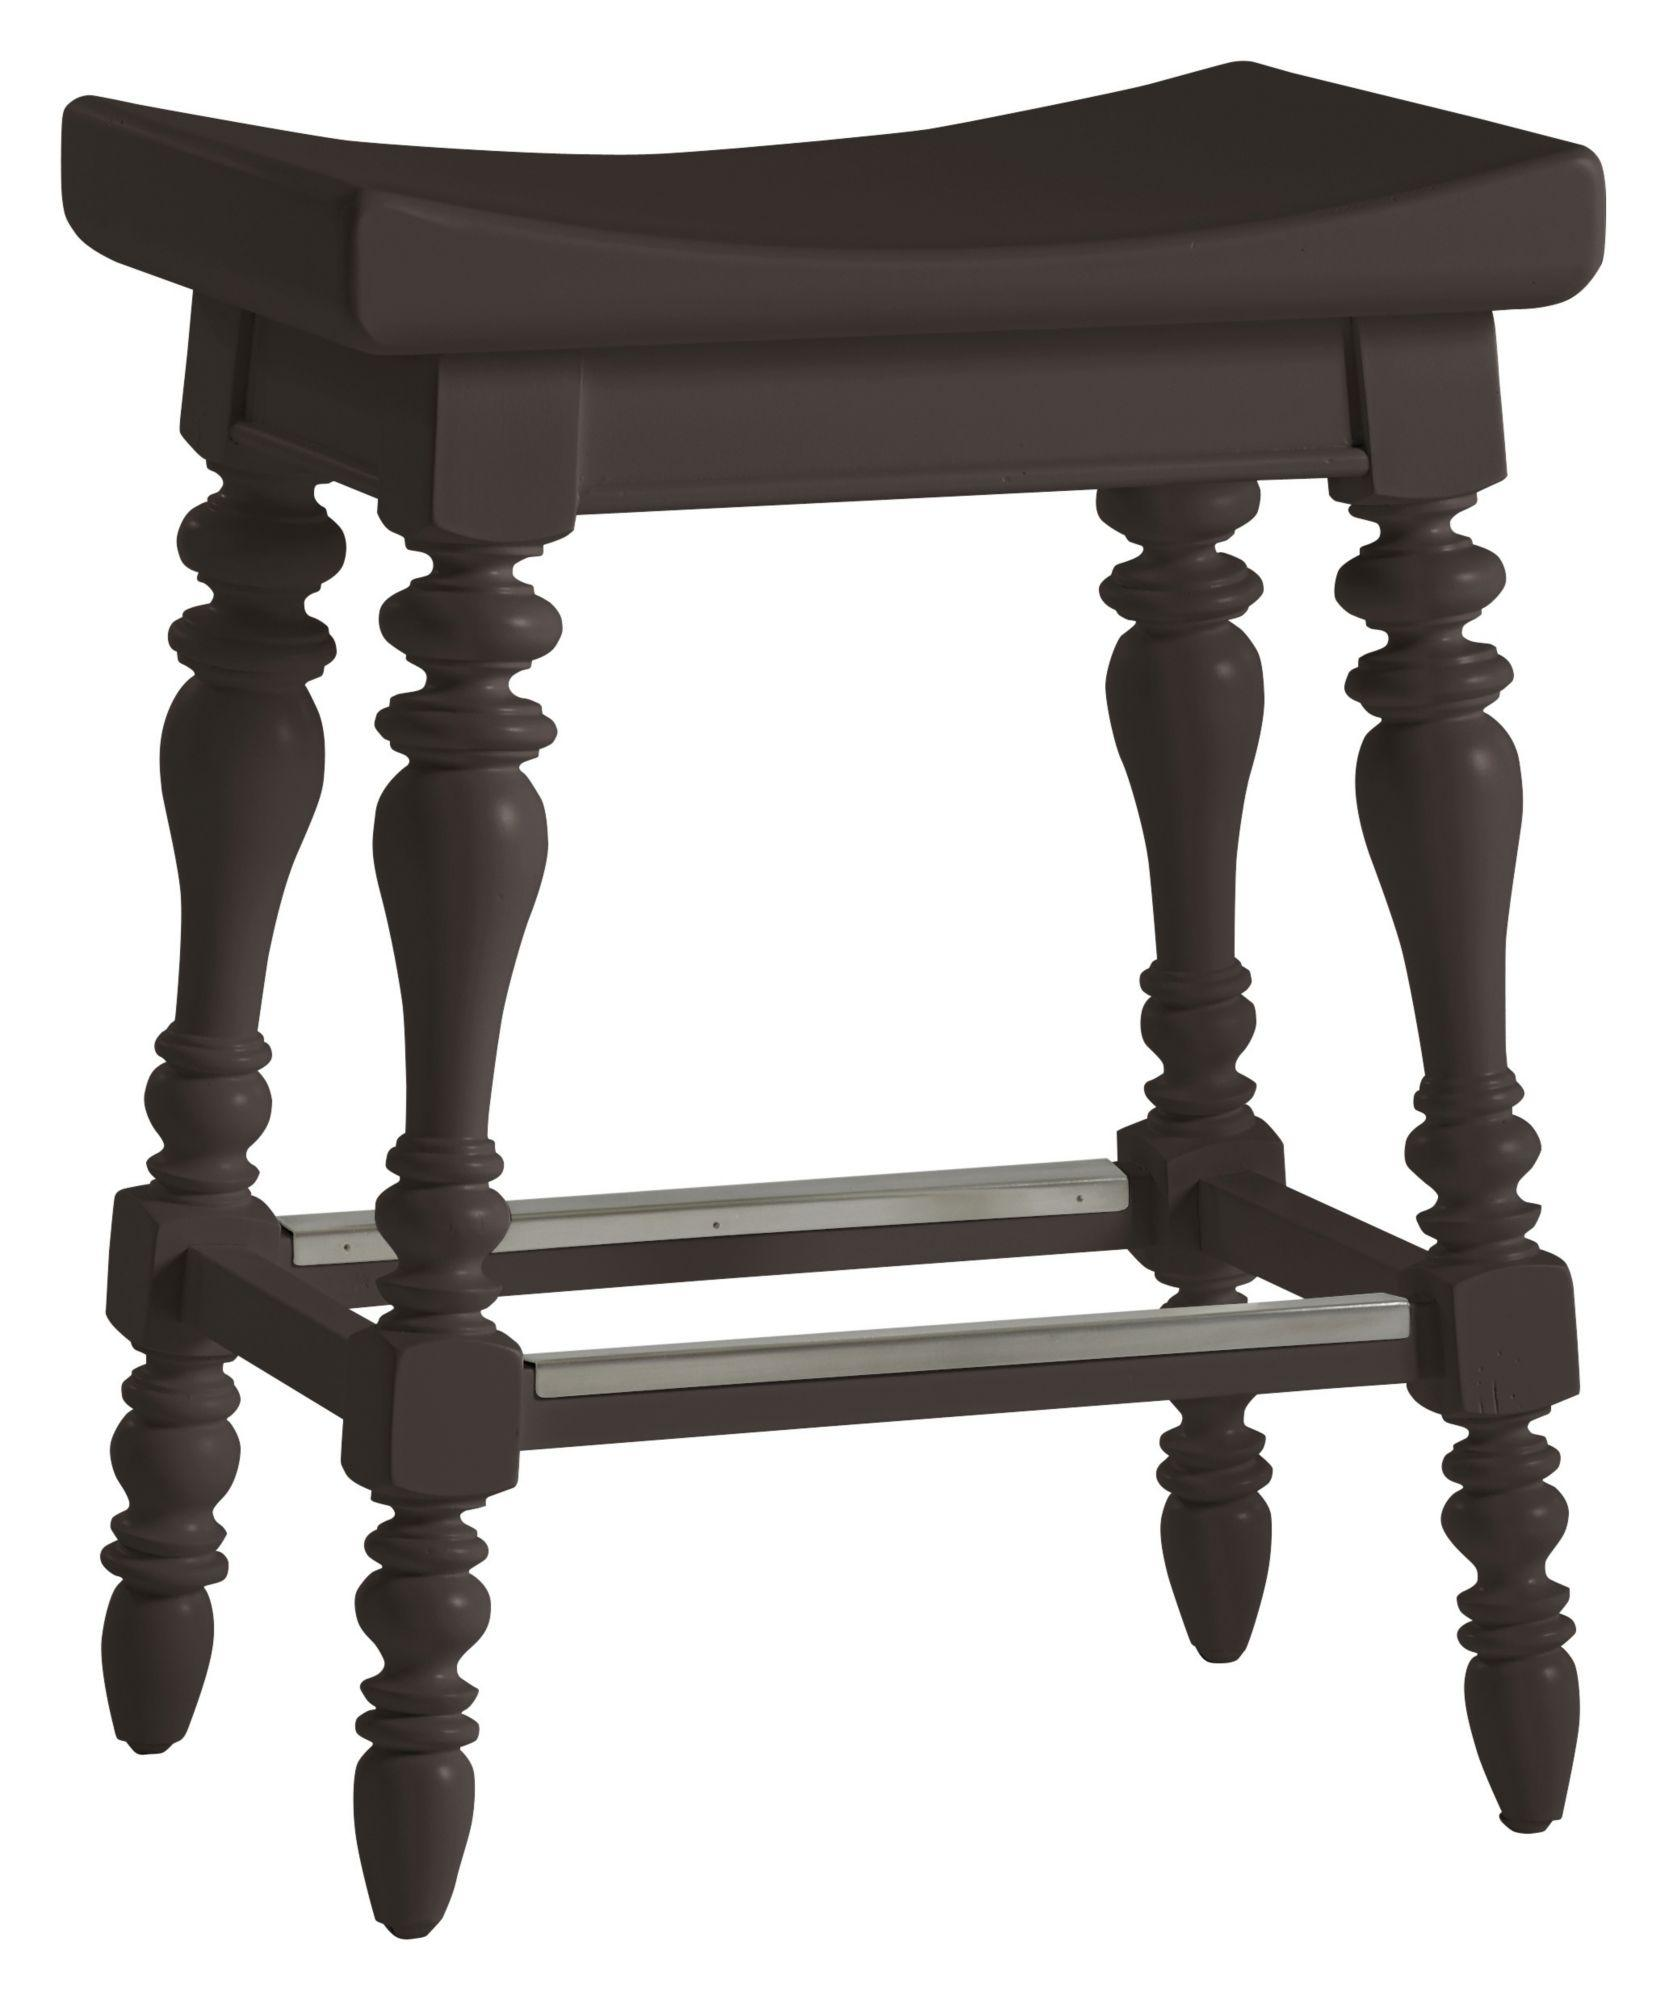 Stanley Furniture Coastal Living Retreat 5 O'Clock Somewhere Counter Stool - Item Number: 411-81-74